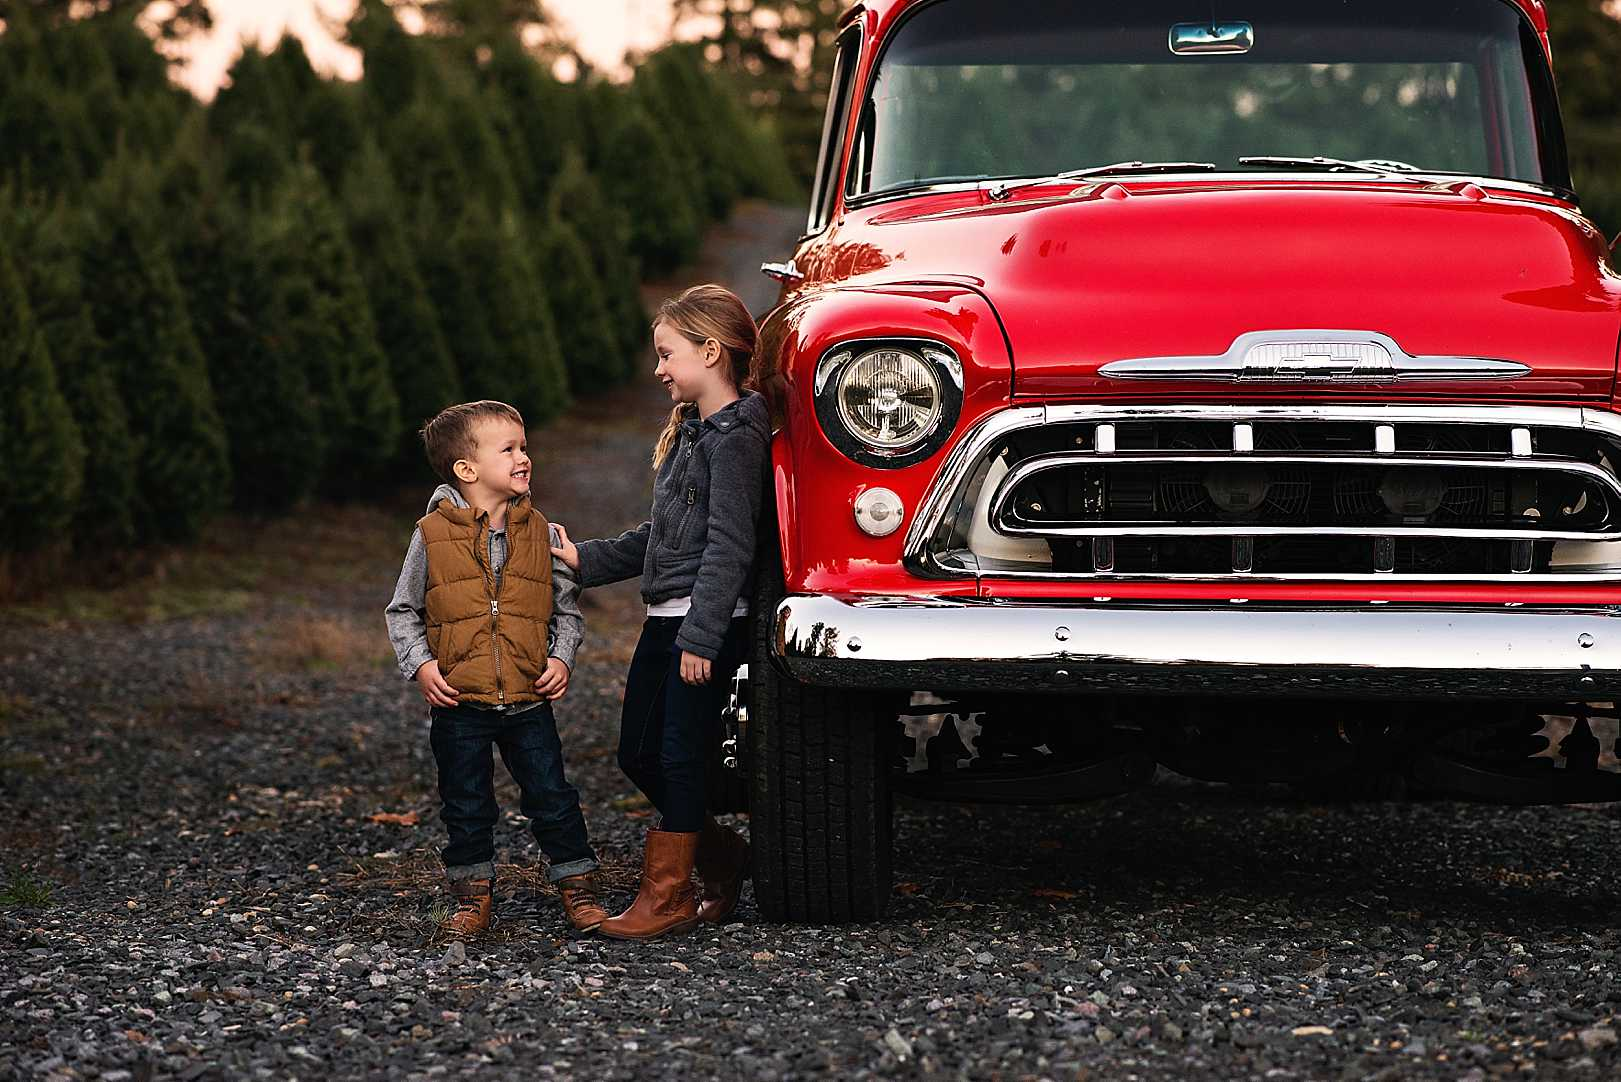 The Secret is Out! | Christmas Mini Sneaks| Stephanie Ratto Photography